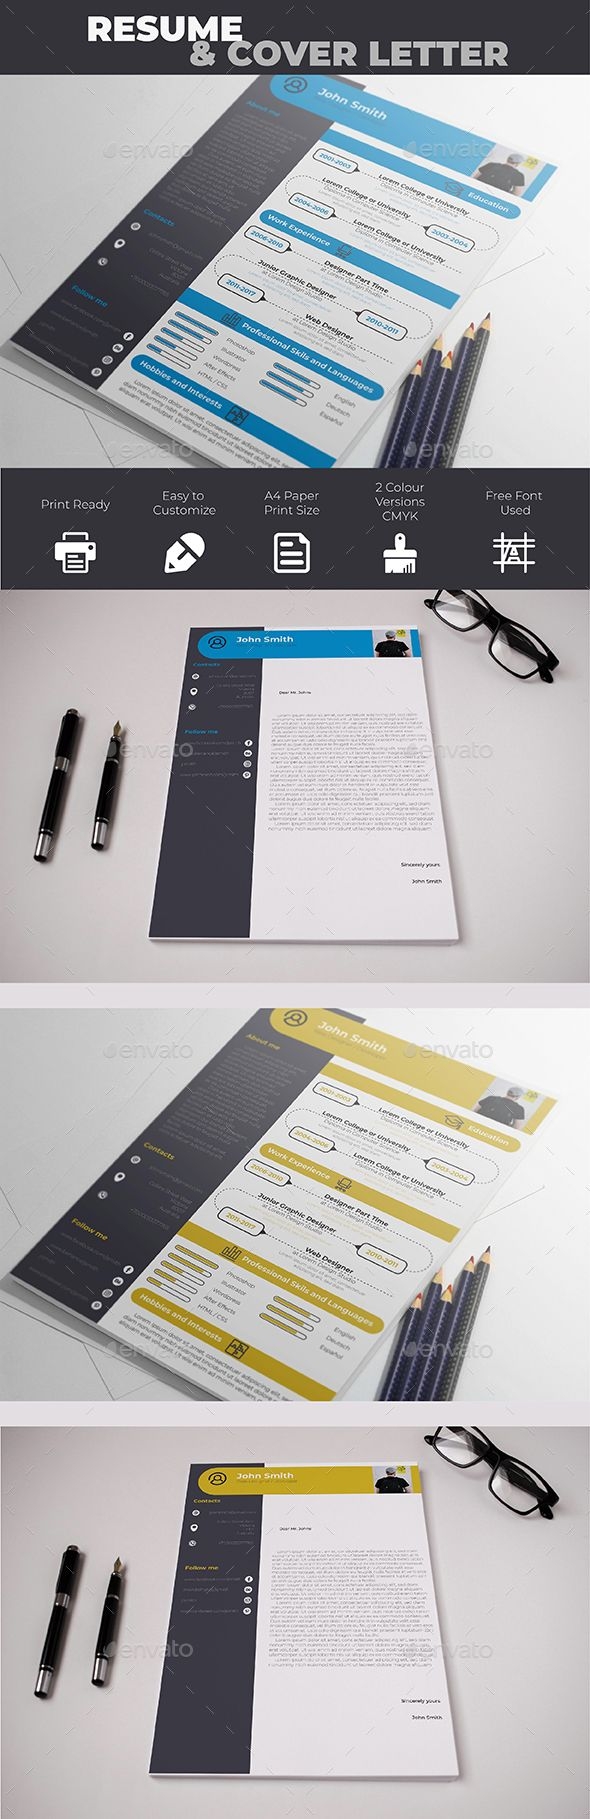 Resume & Cover Letter Template PSD, Vector EPS, AI #design #cv